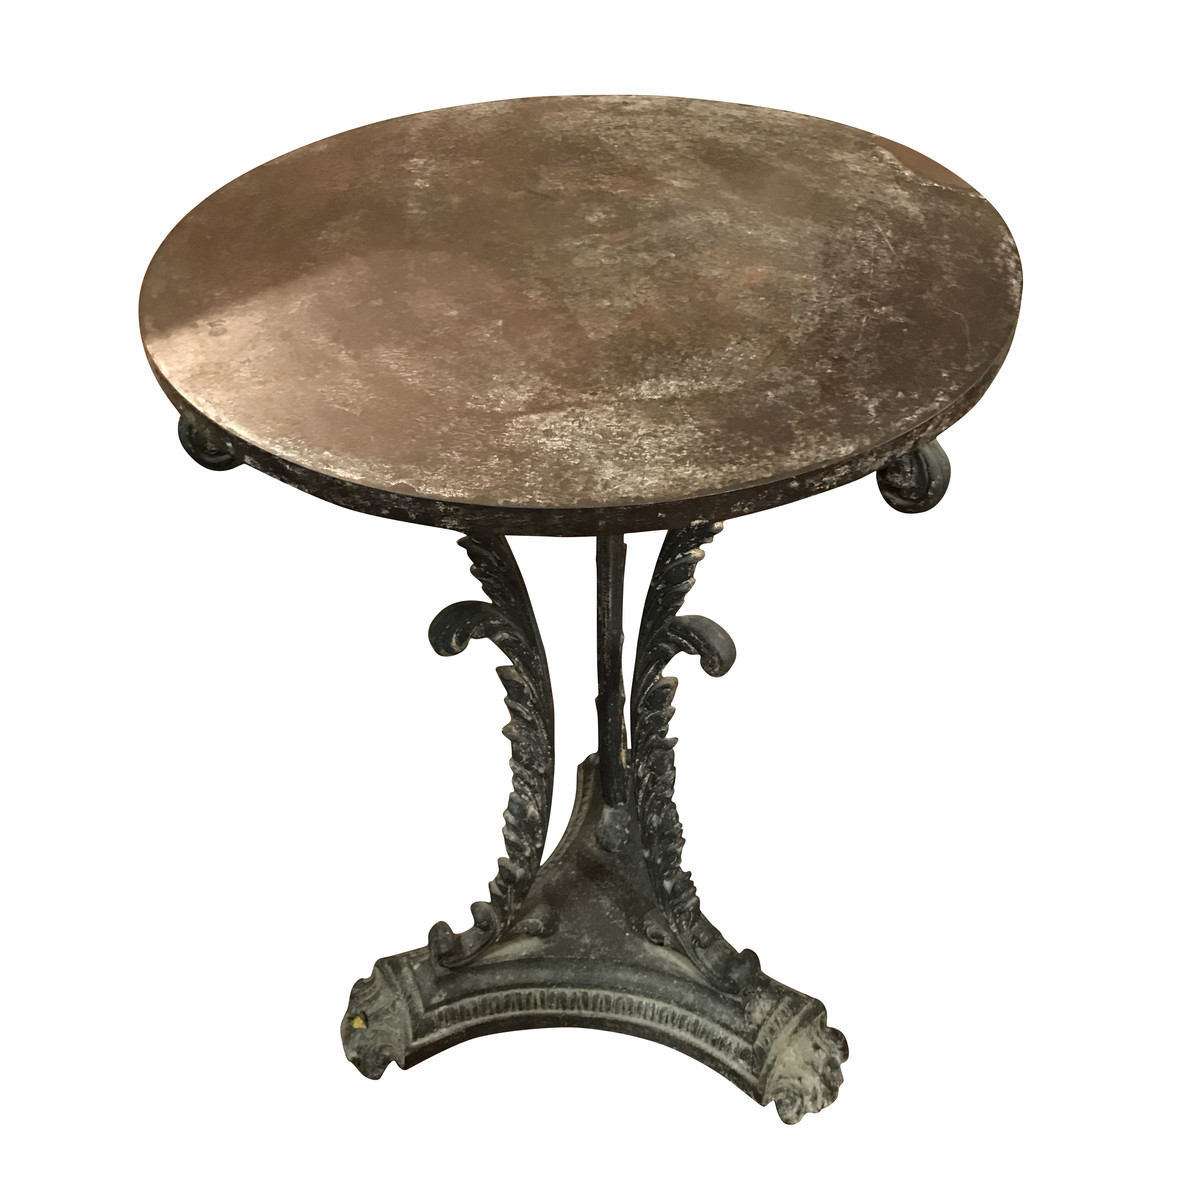 Coffee Table With Bronze Legs: 19thc English Bronze Fluted Leg Side Table